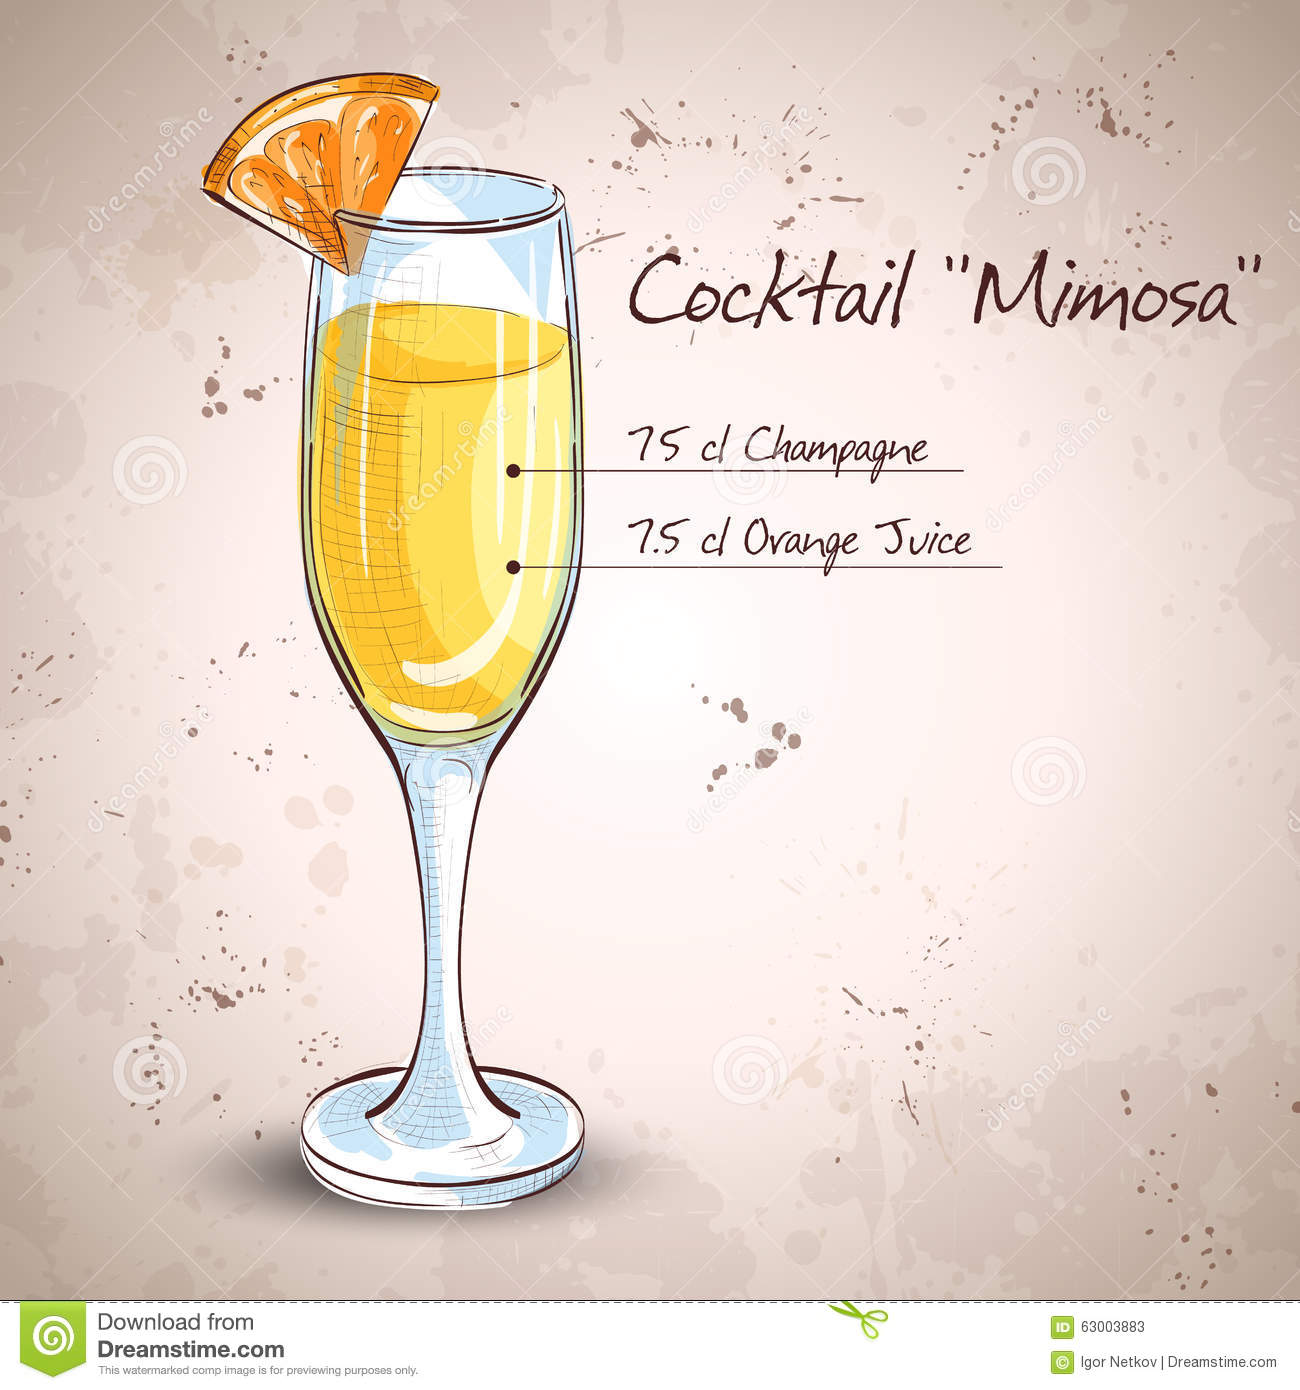 Alcohol stock image 88074583 for How many mimosas per bottle of champagne